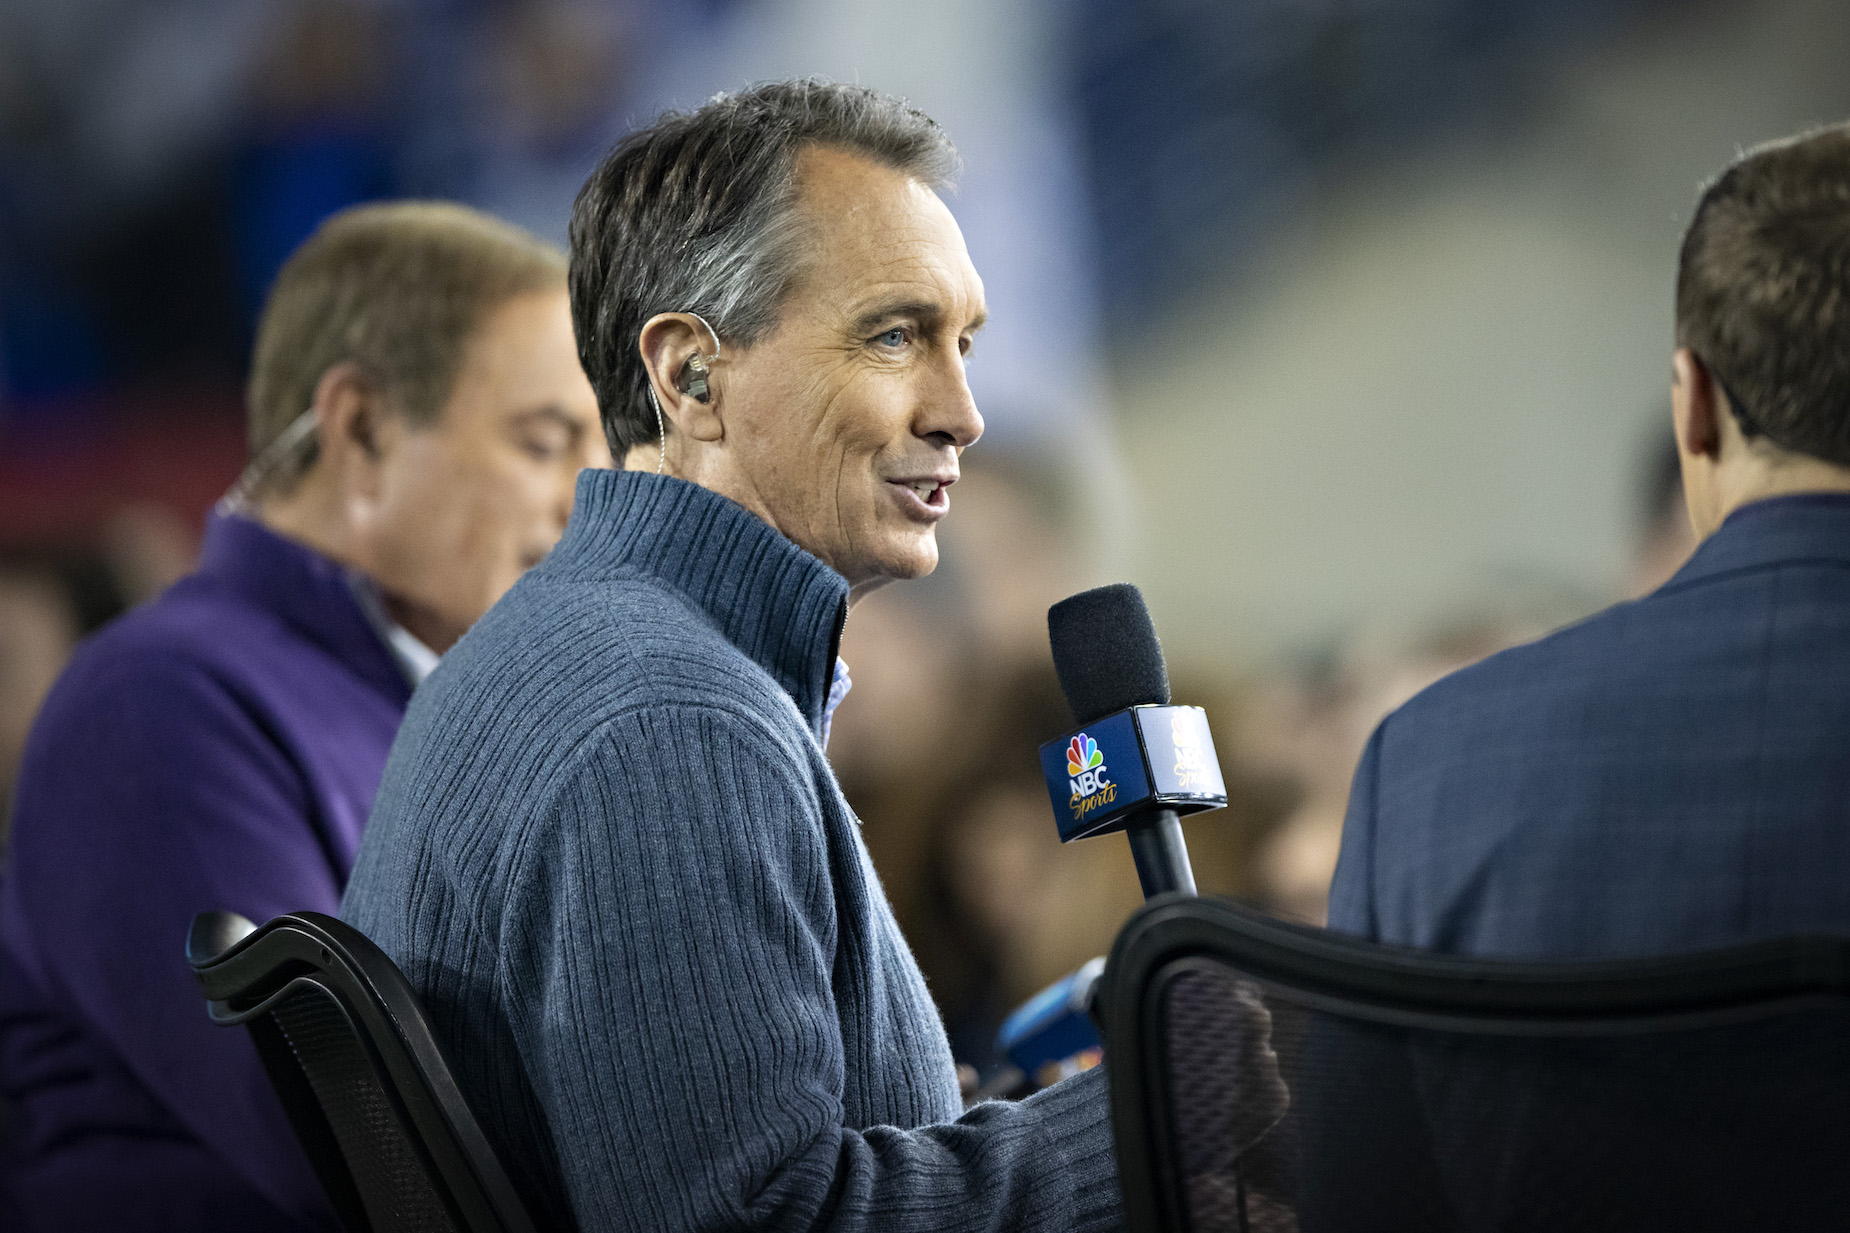 Due to social distancing, Cris Collinsworth won't be sliding into the NBC broadcast booth this season.